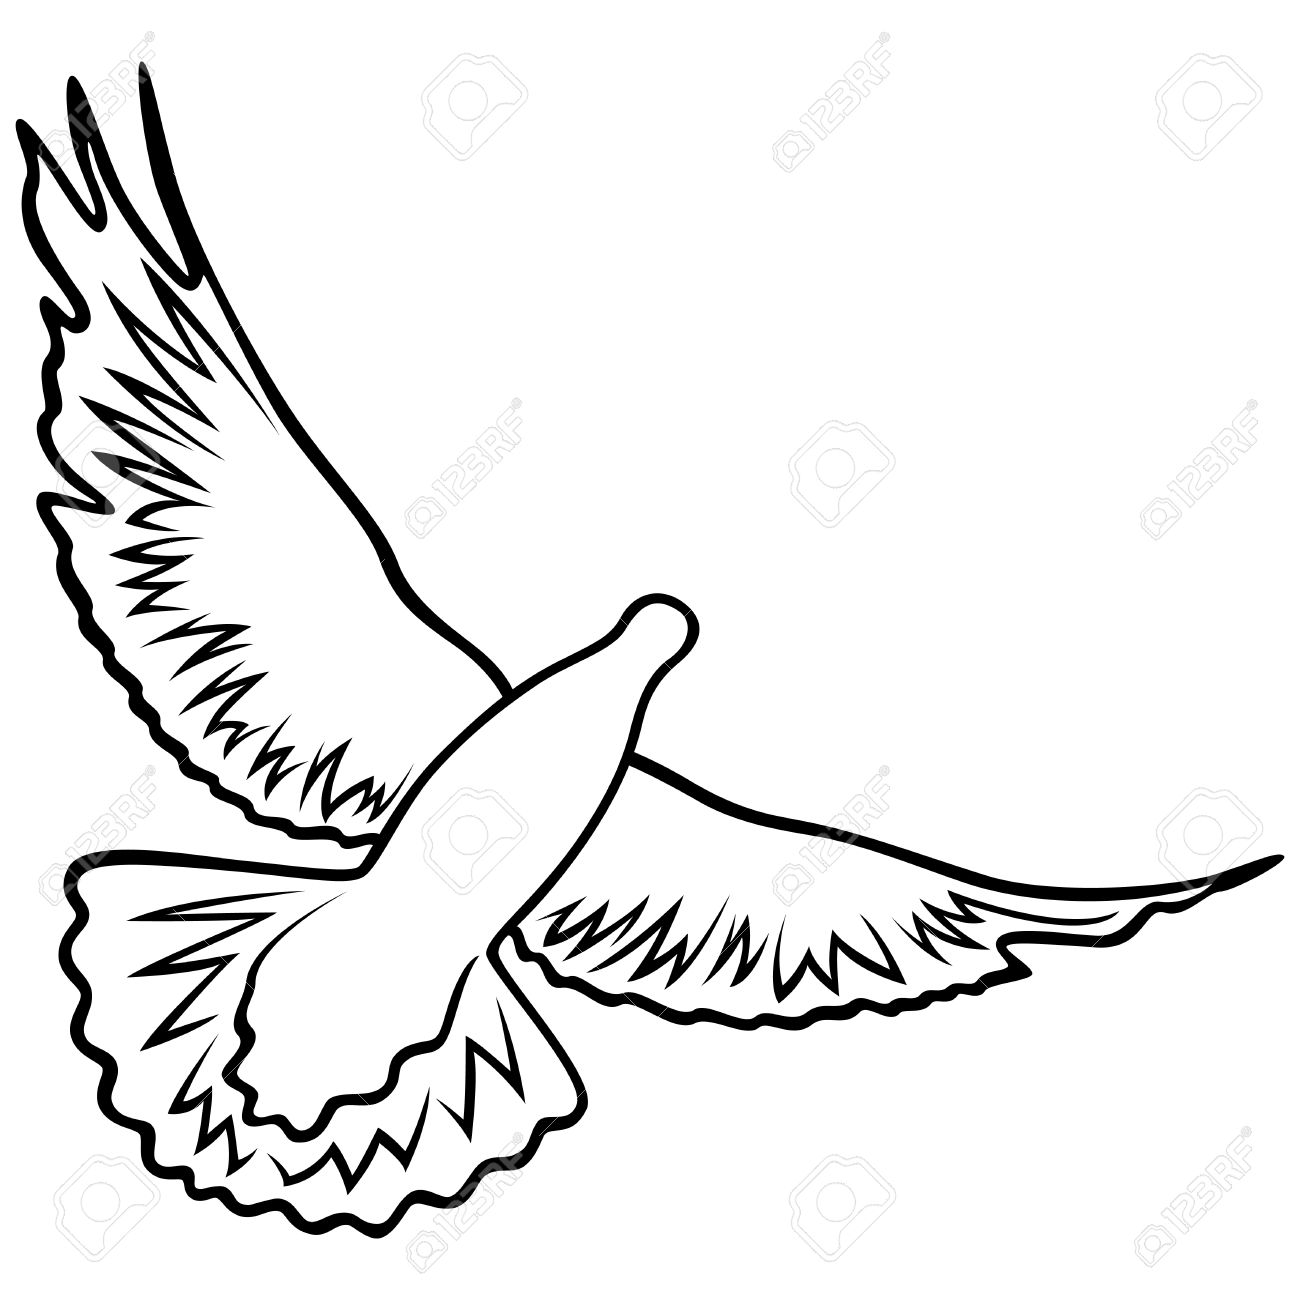 Dove In Flight With Widely Outstretched Wings, Outline Vector.